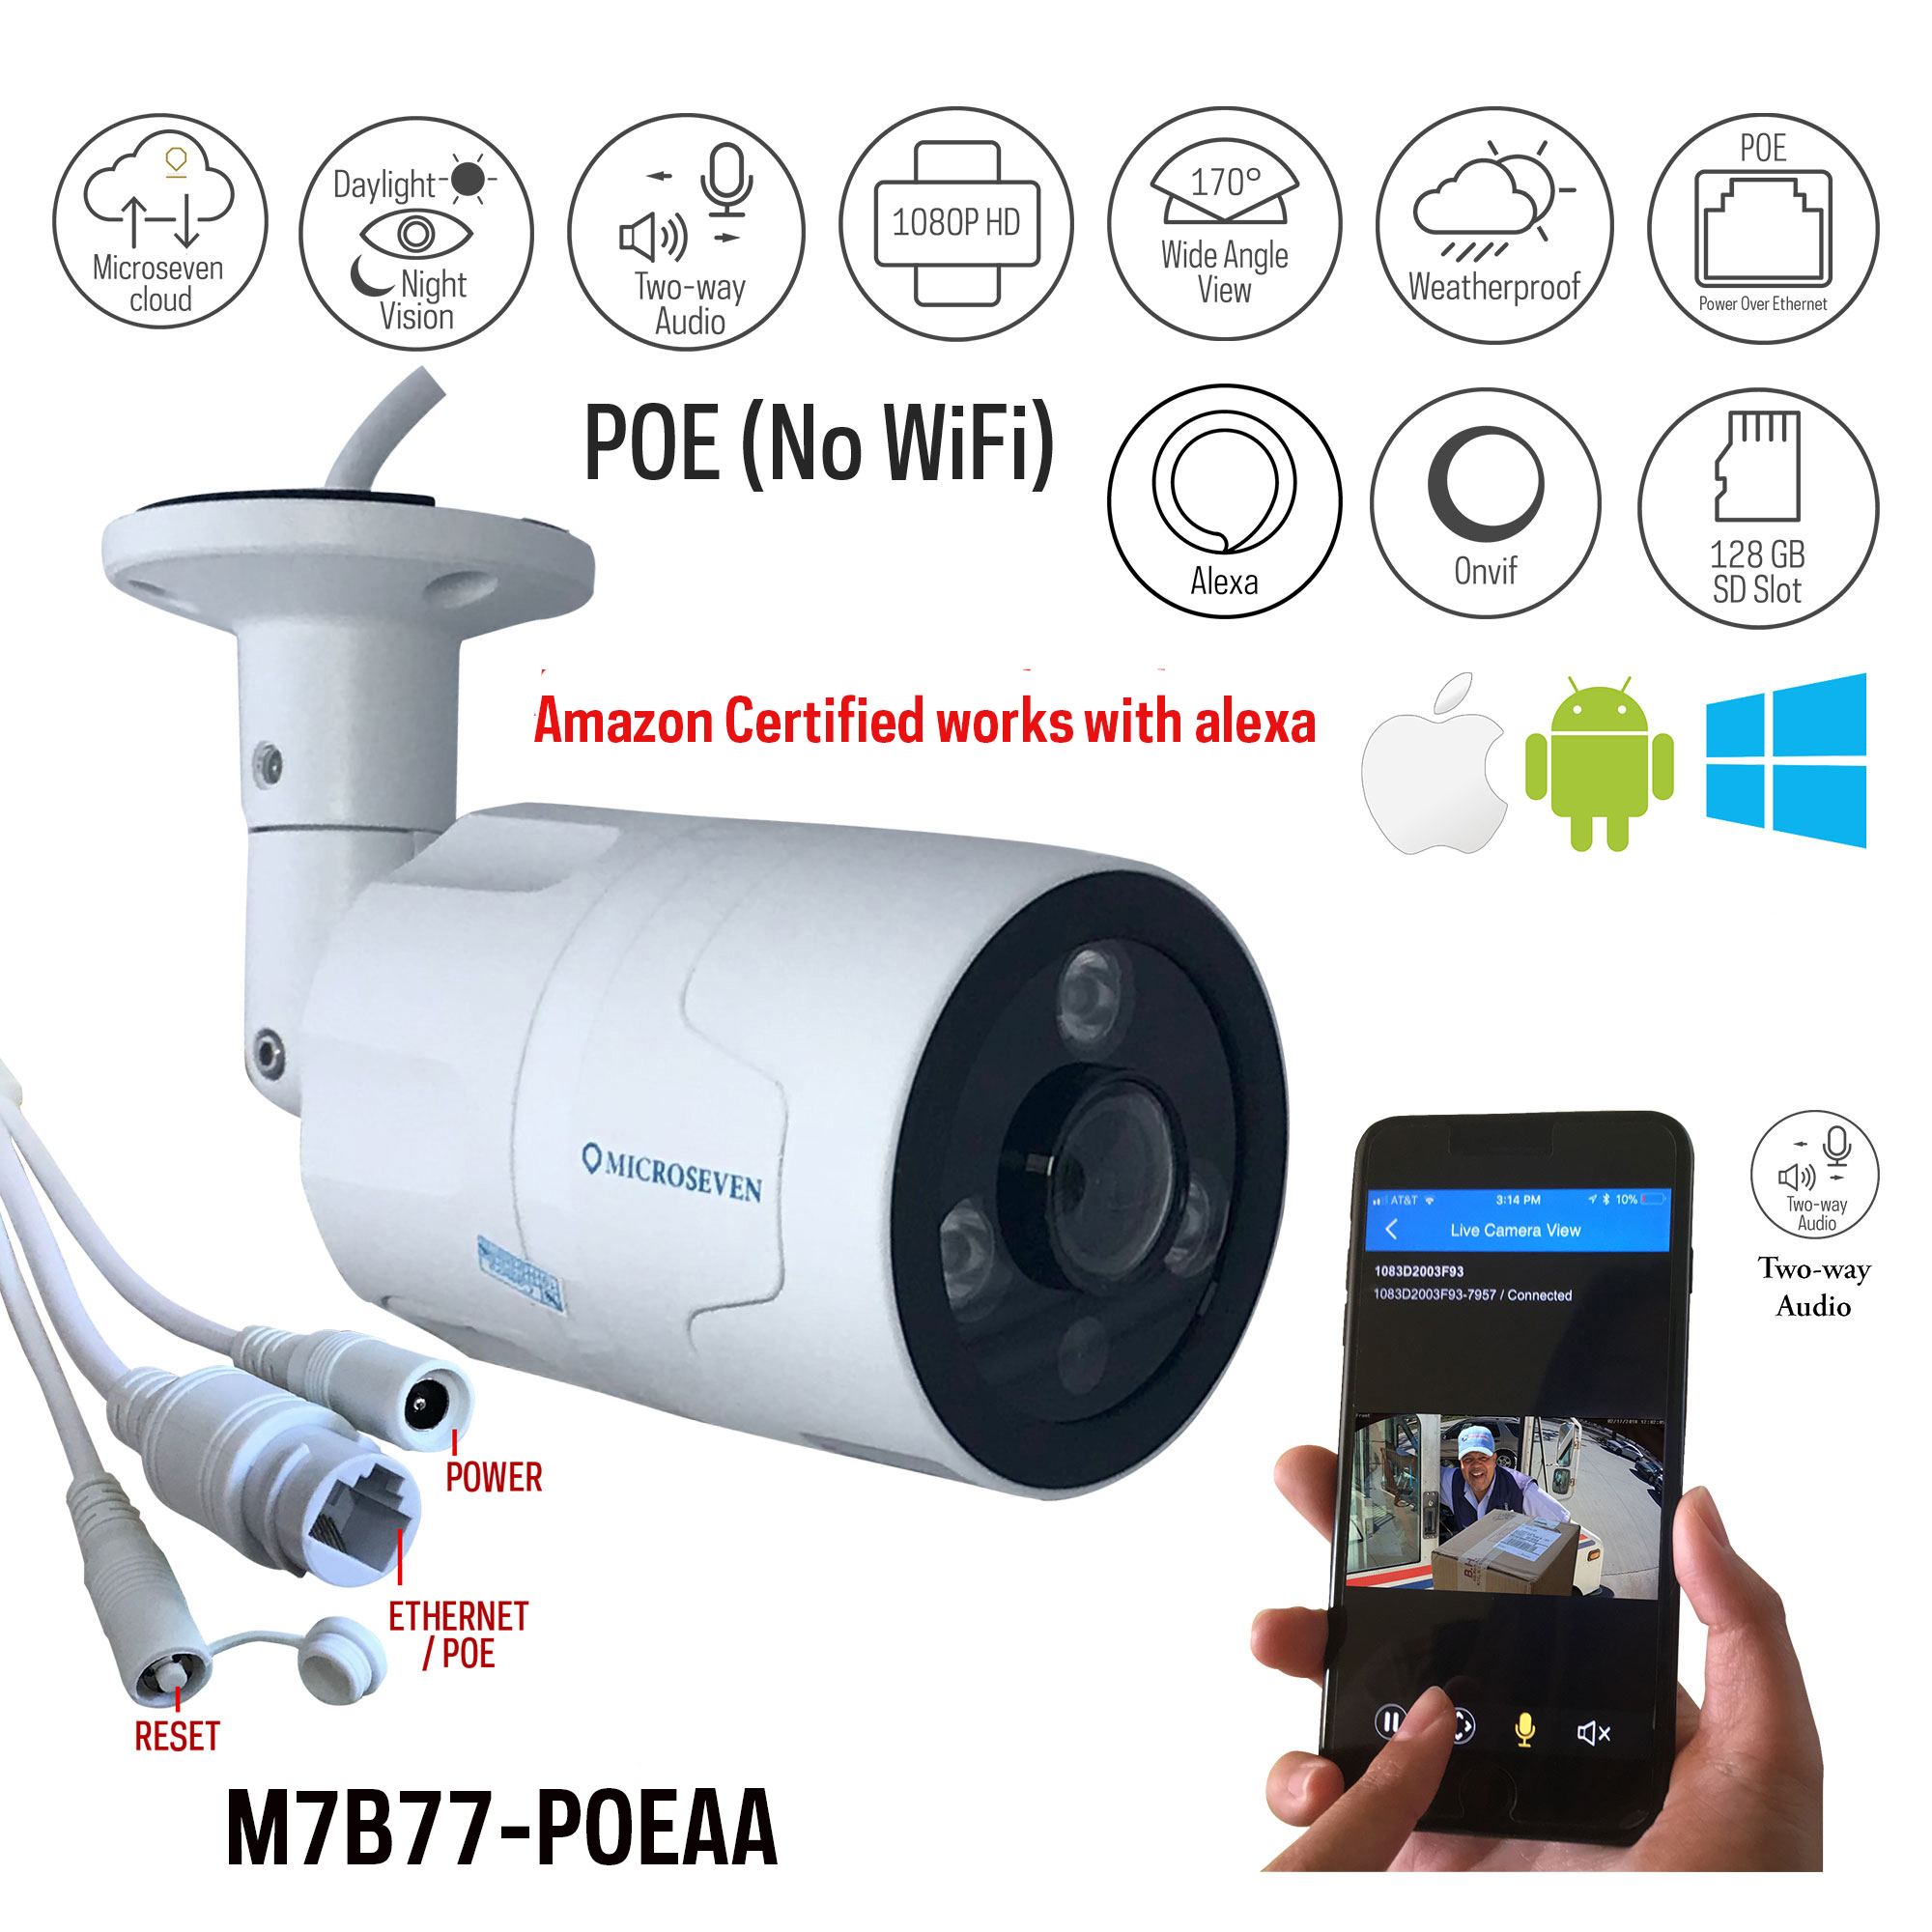 hight resolution of microseven open source 1080p 30fps sony cmos hd poe outdoor camera amazon certified works